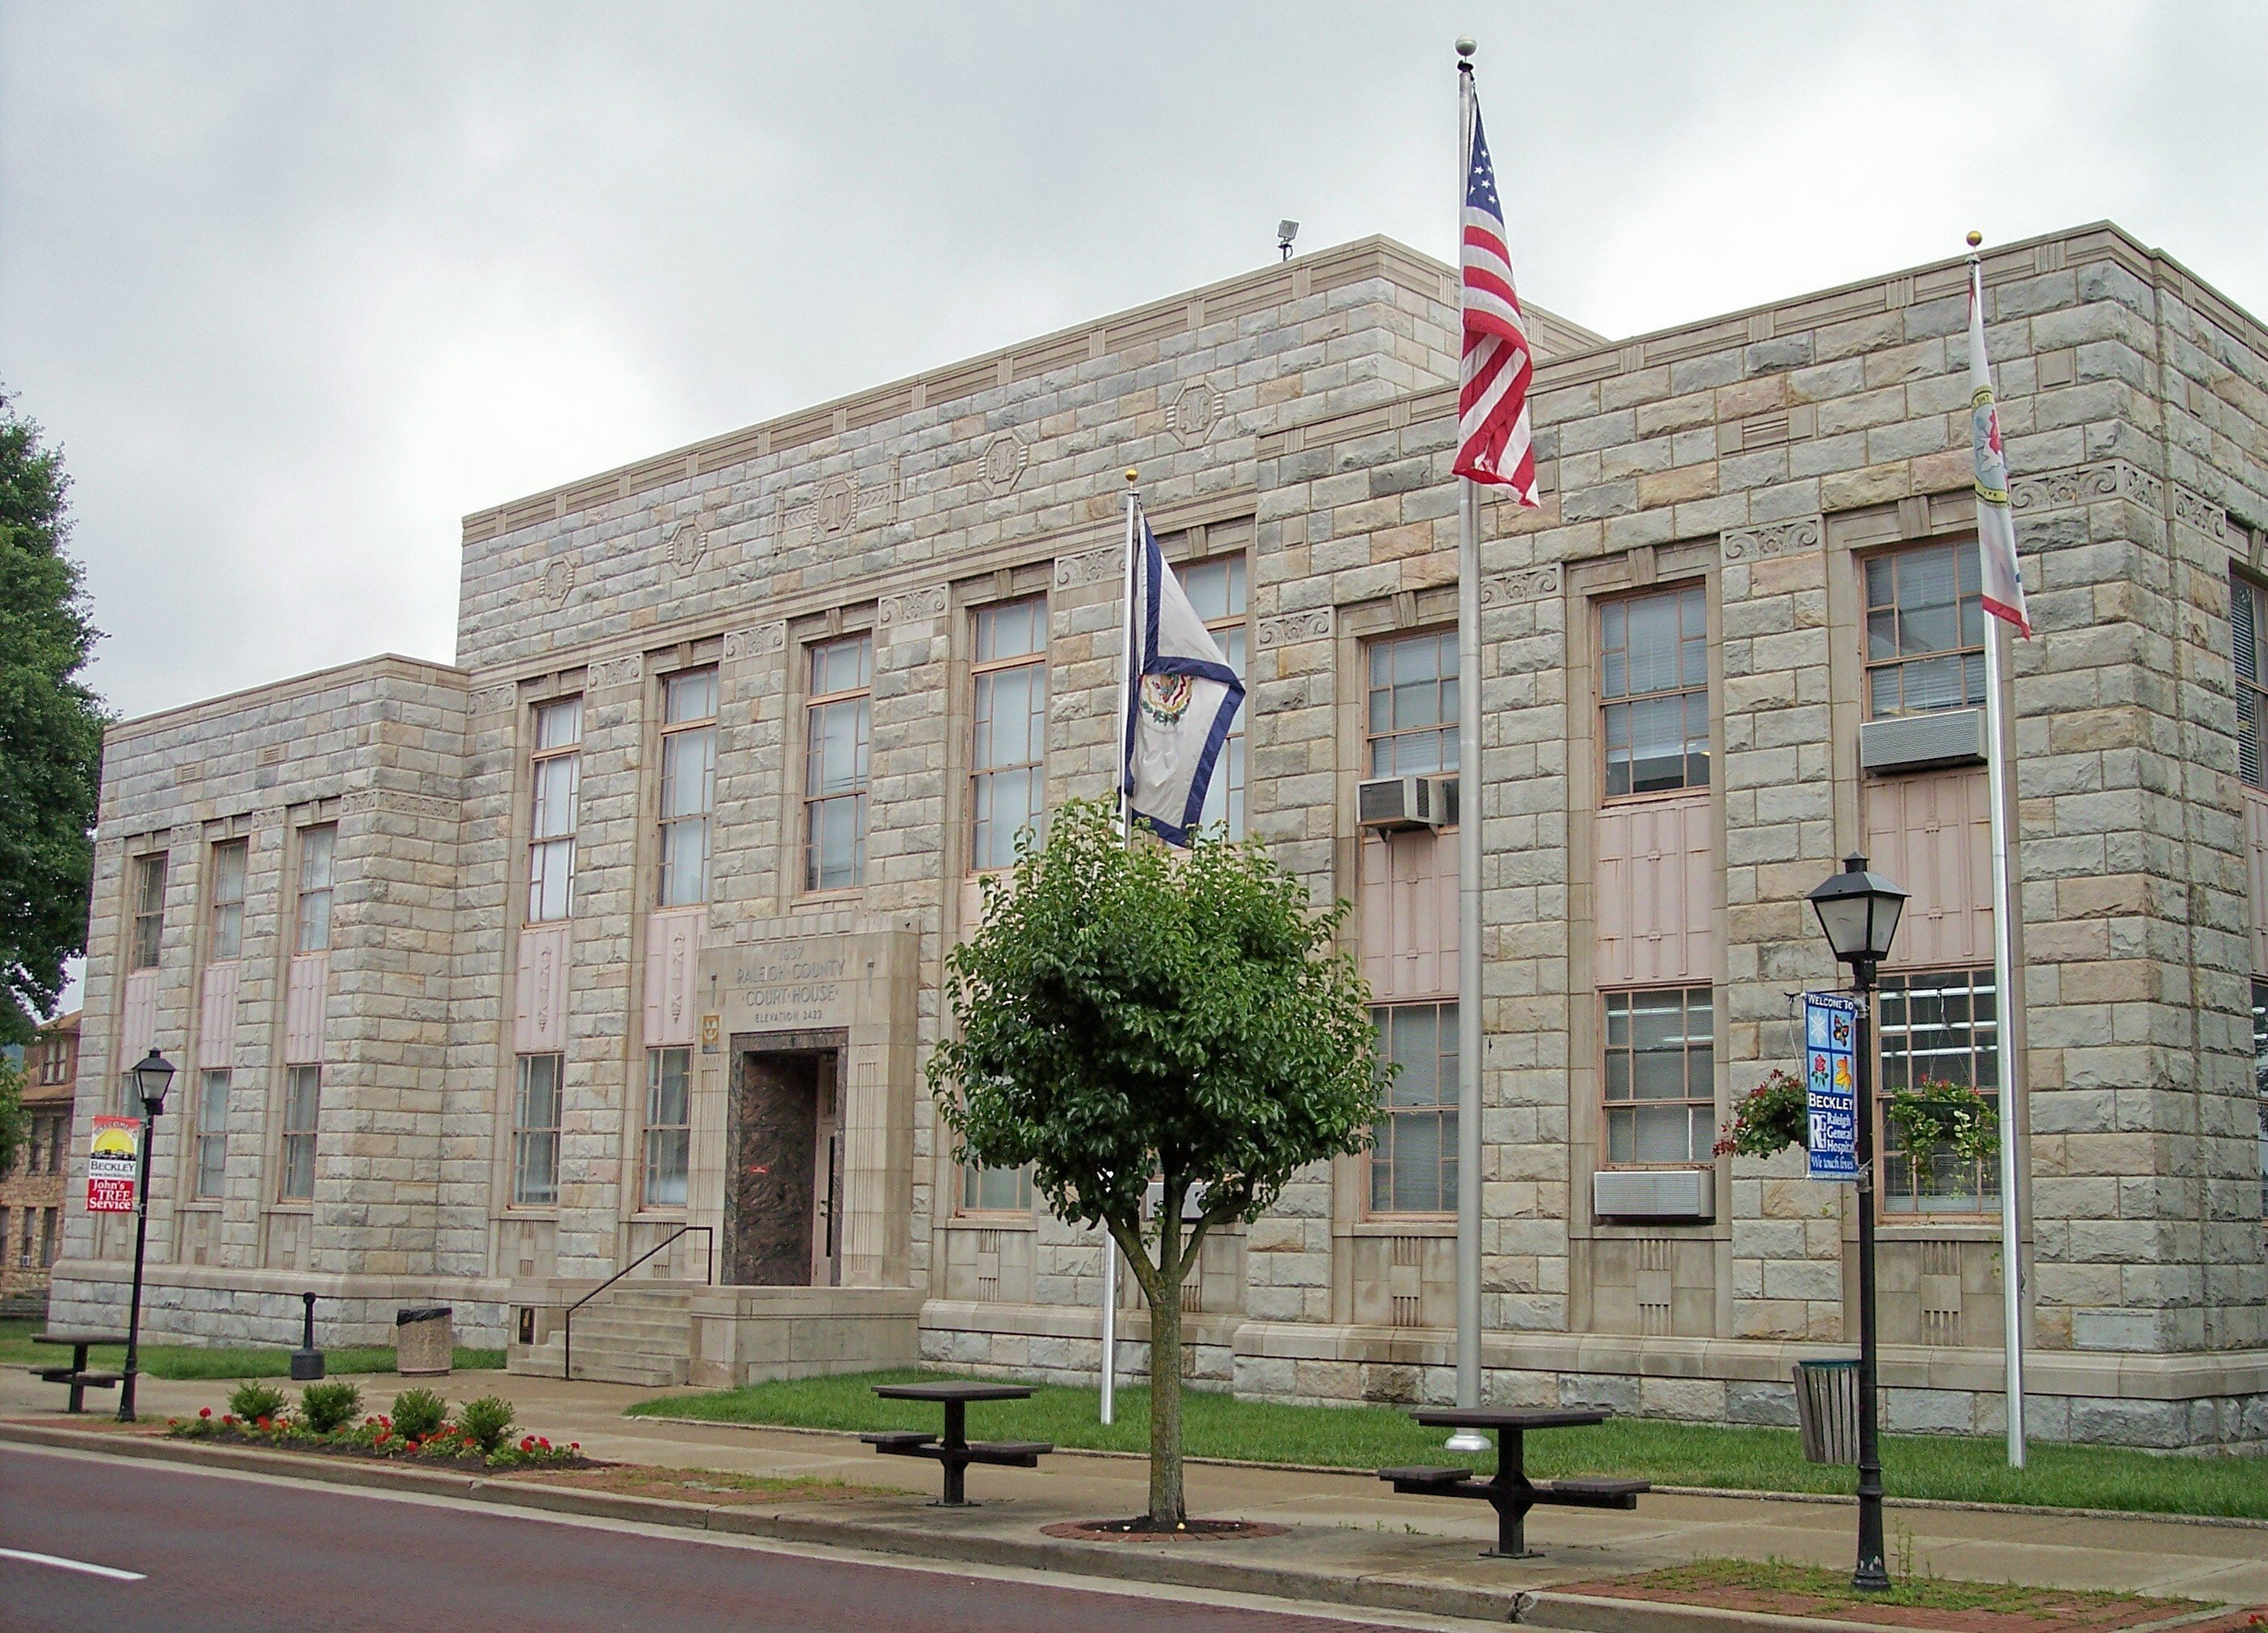 The current courthouse building was built by expanding the 1893 building in 1936-1937 with financial assistance from the WPA. Image obtained from Wikimedia.